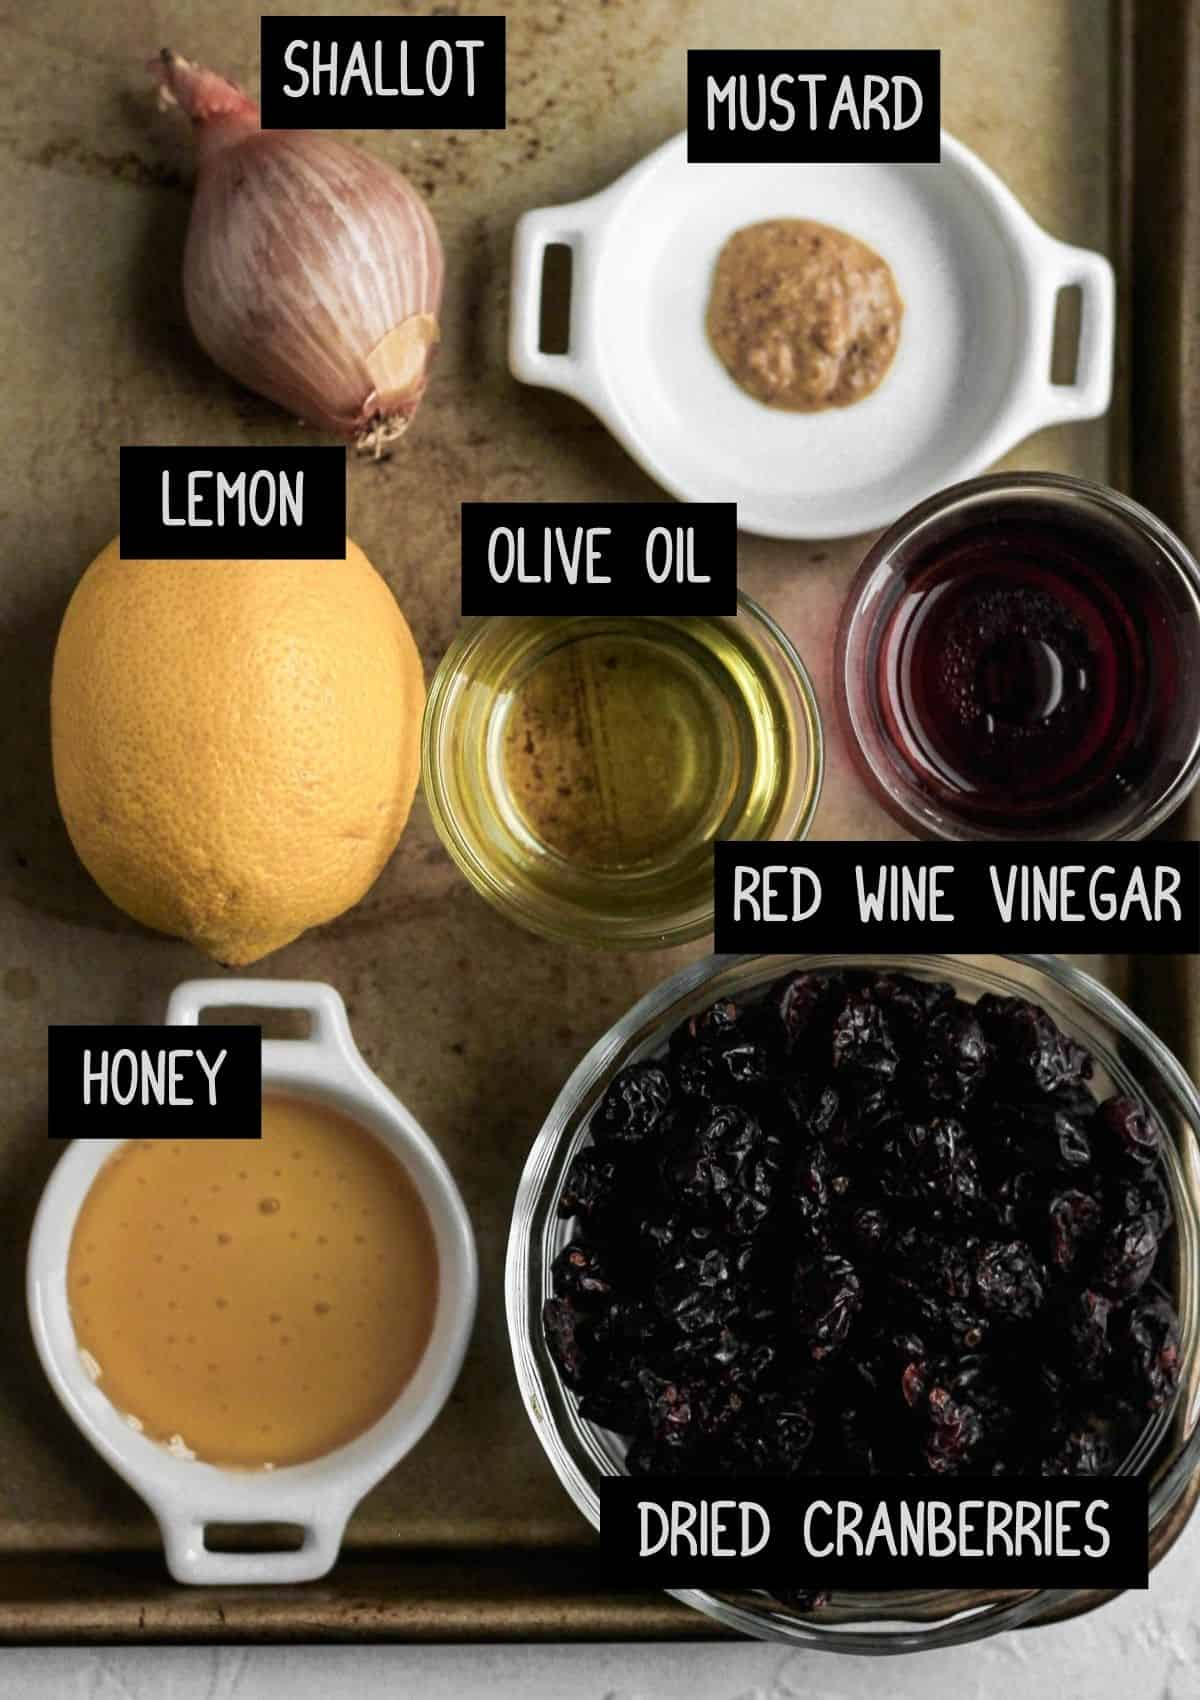 Labelled ingredients for the warm cranberry vinaigrette (see recipe for details).